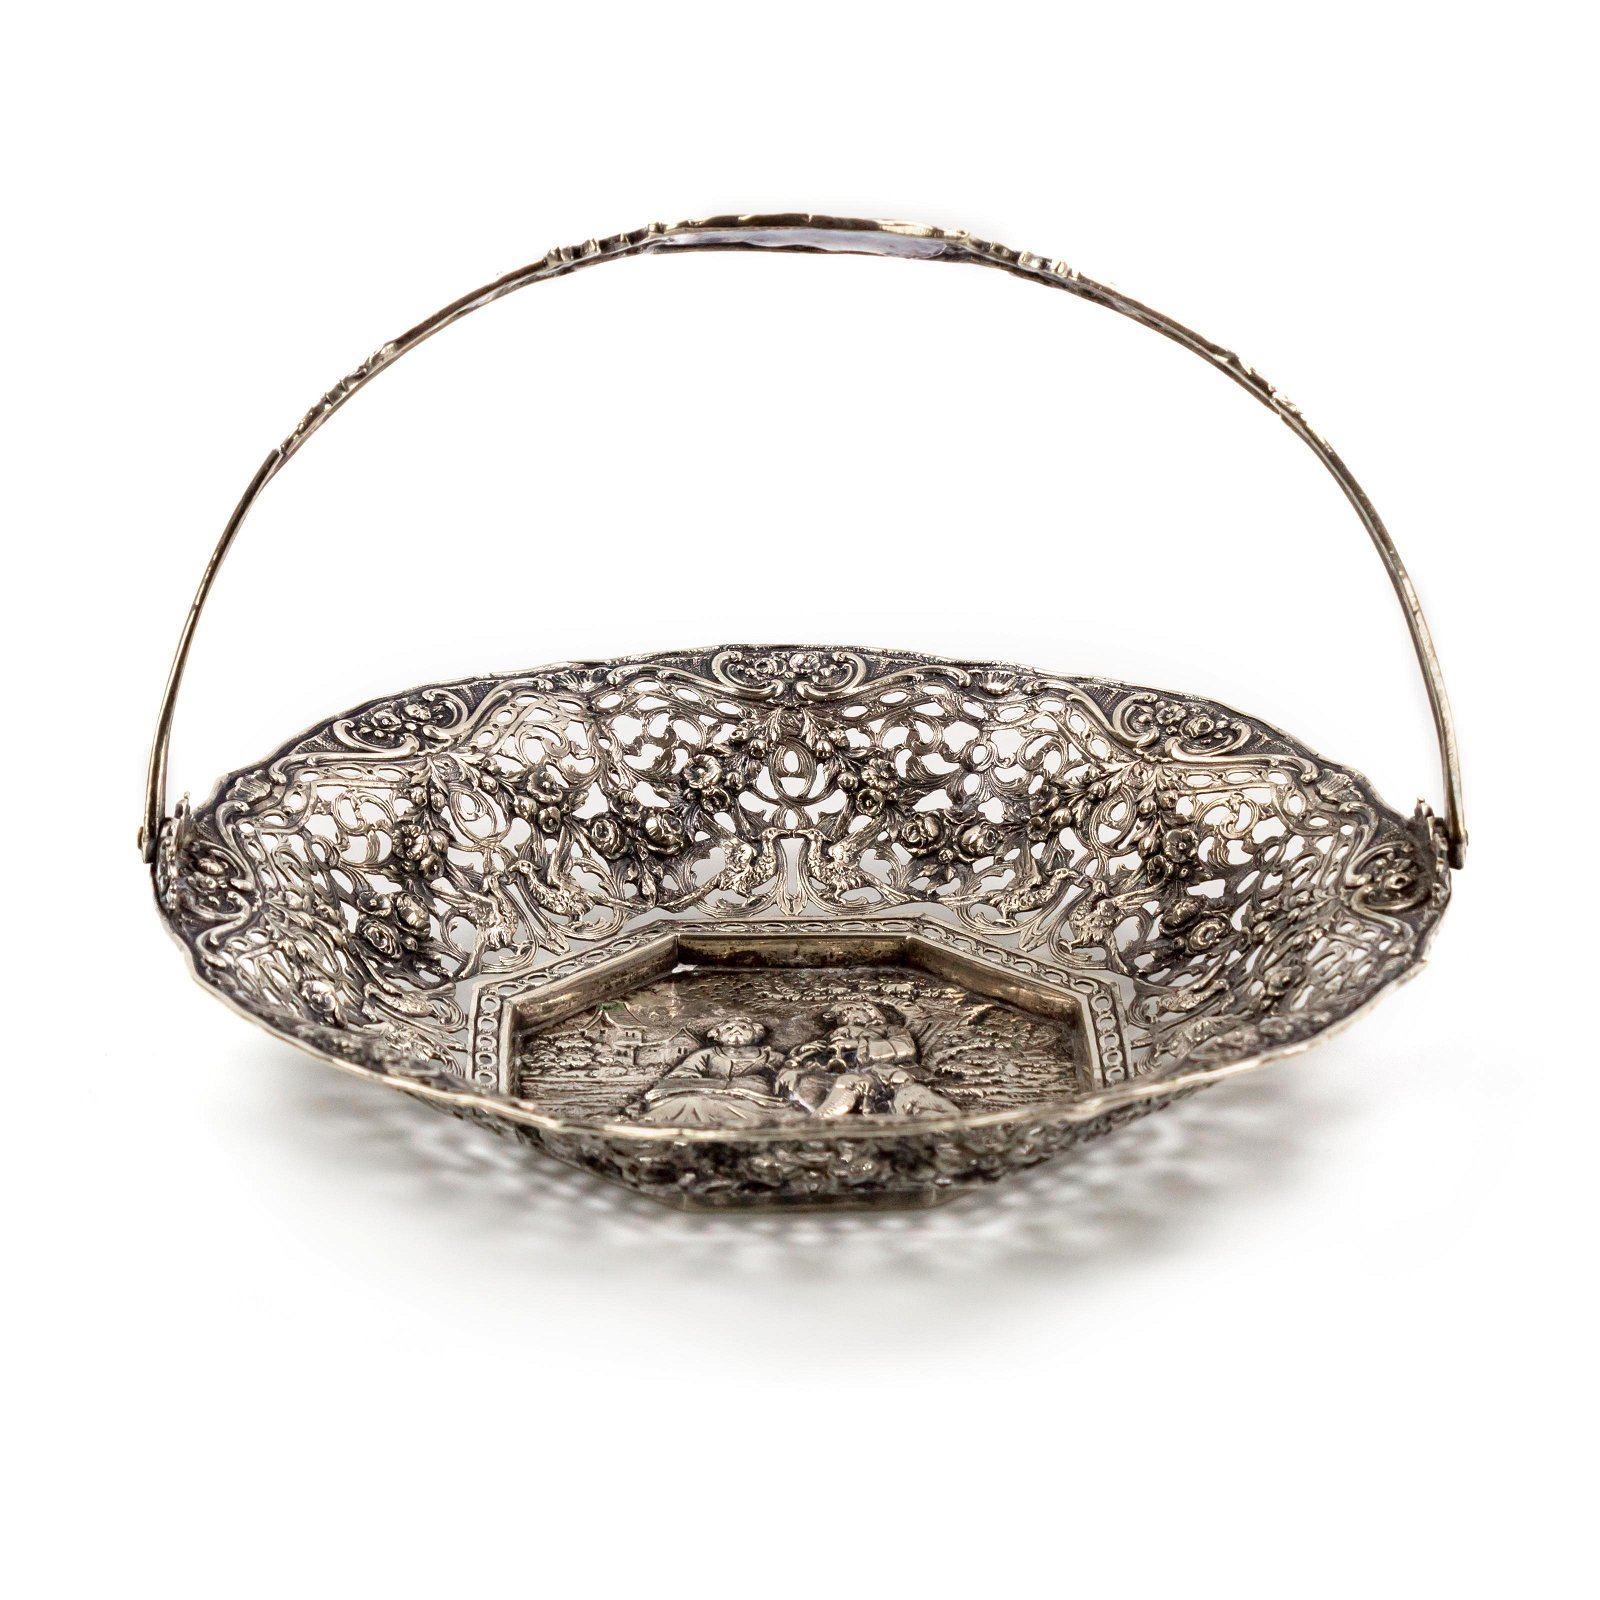 Ornate 800 Silver Repousse Reticulated Basket Bowl